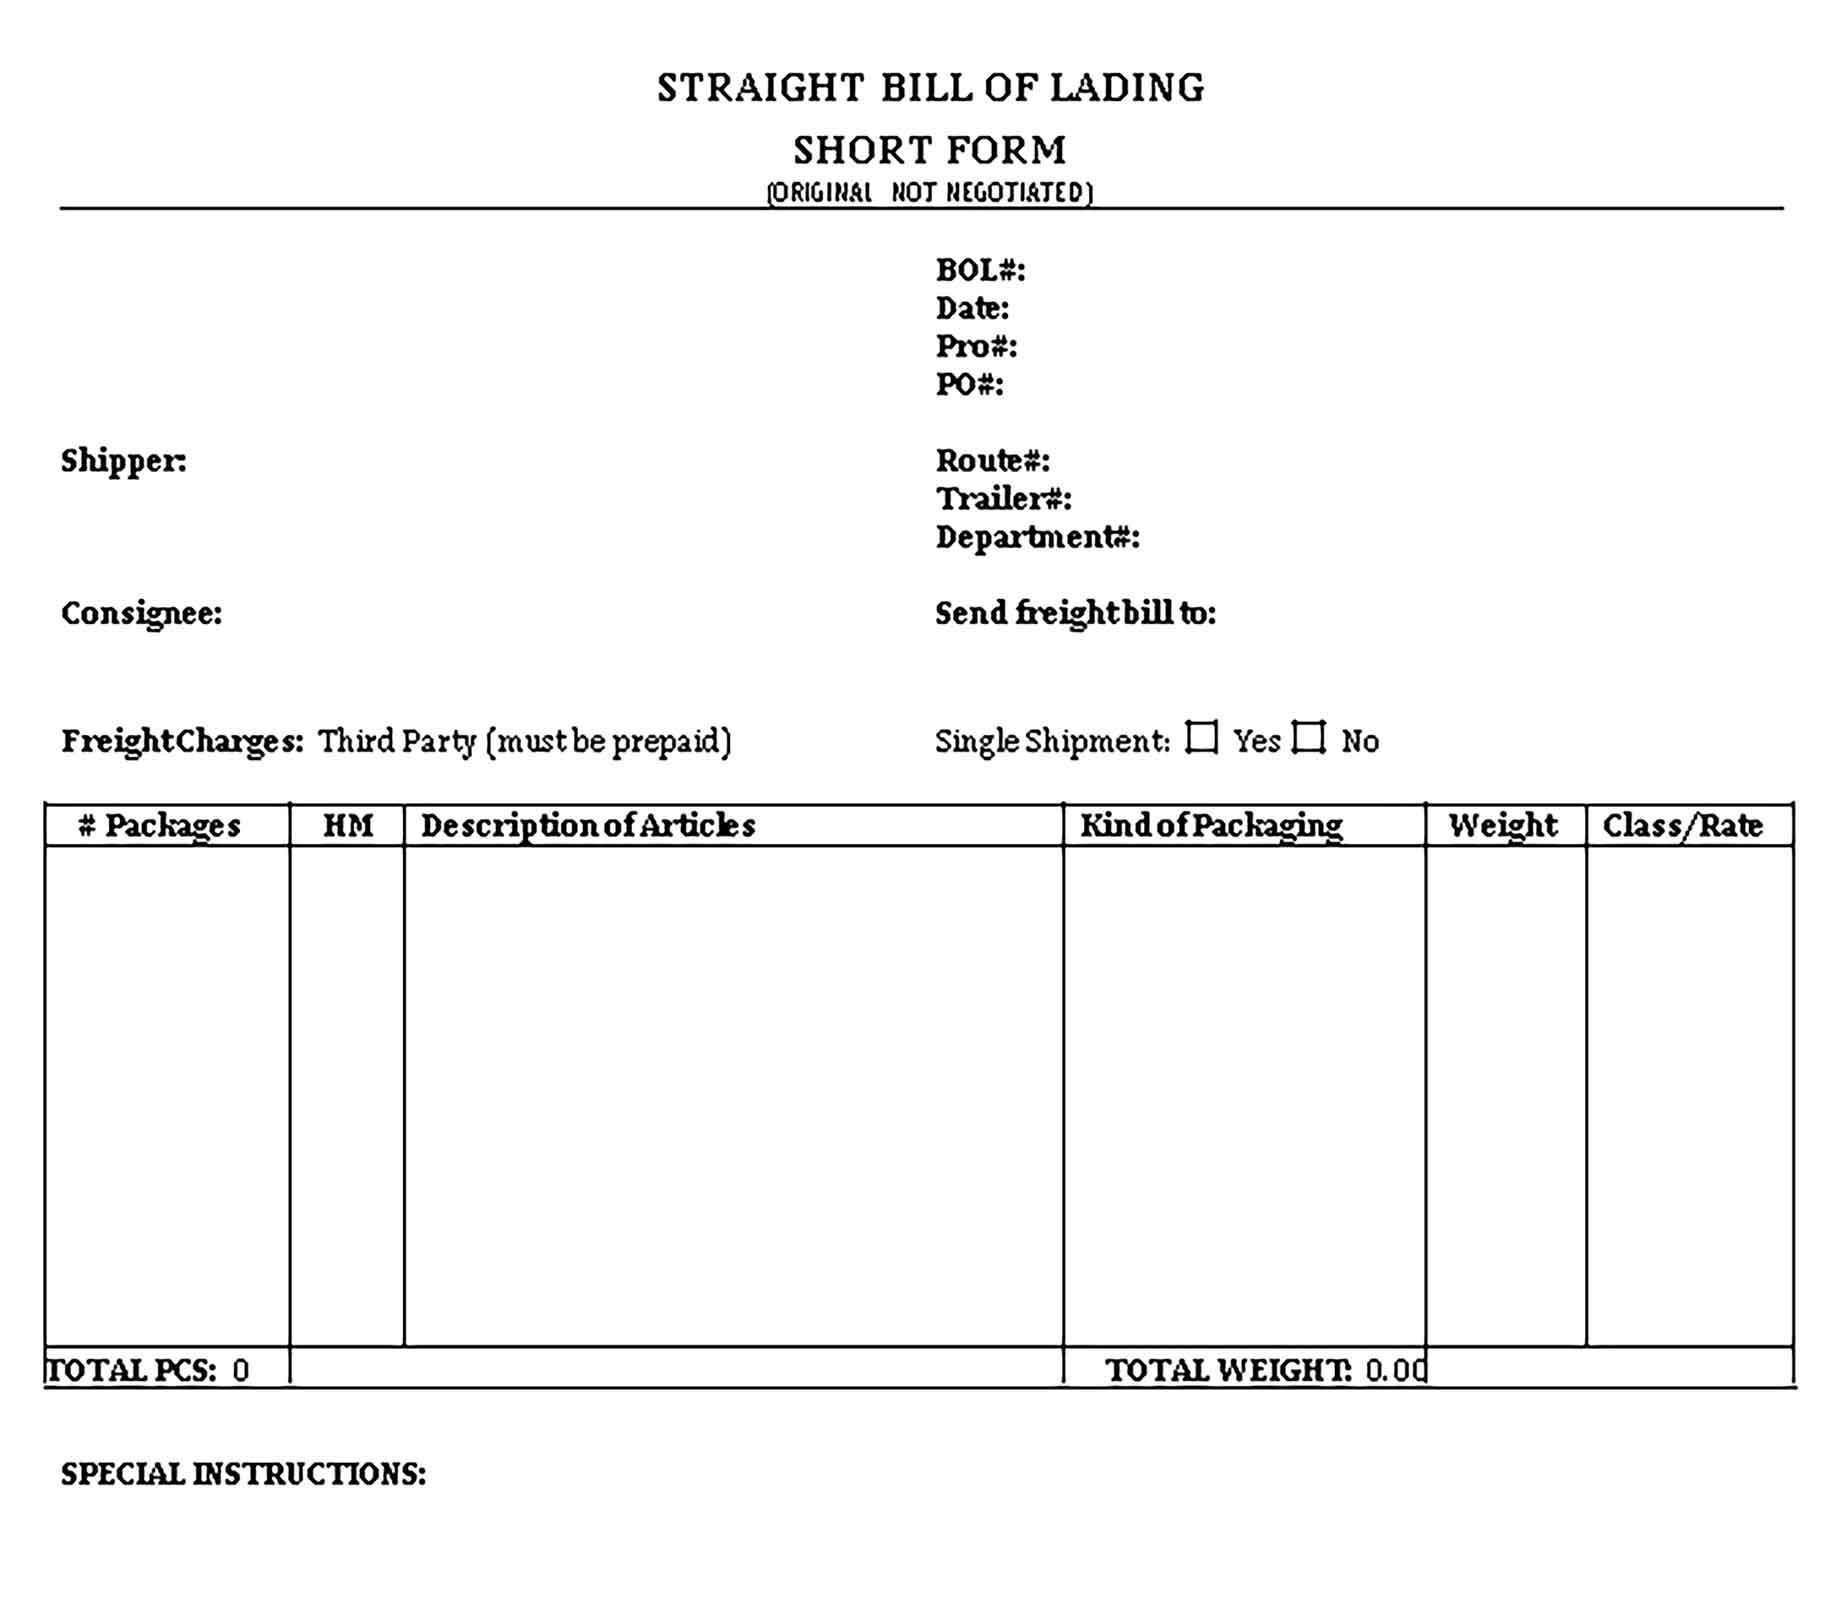 Sample Straight Bill of Lading Short Form from Drake Transportation Templates 1